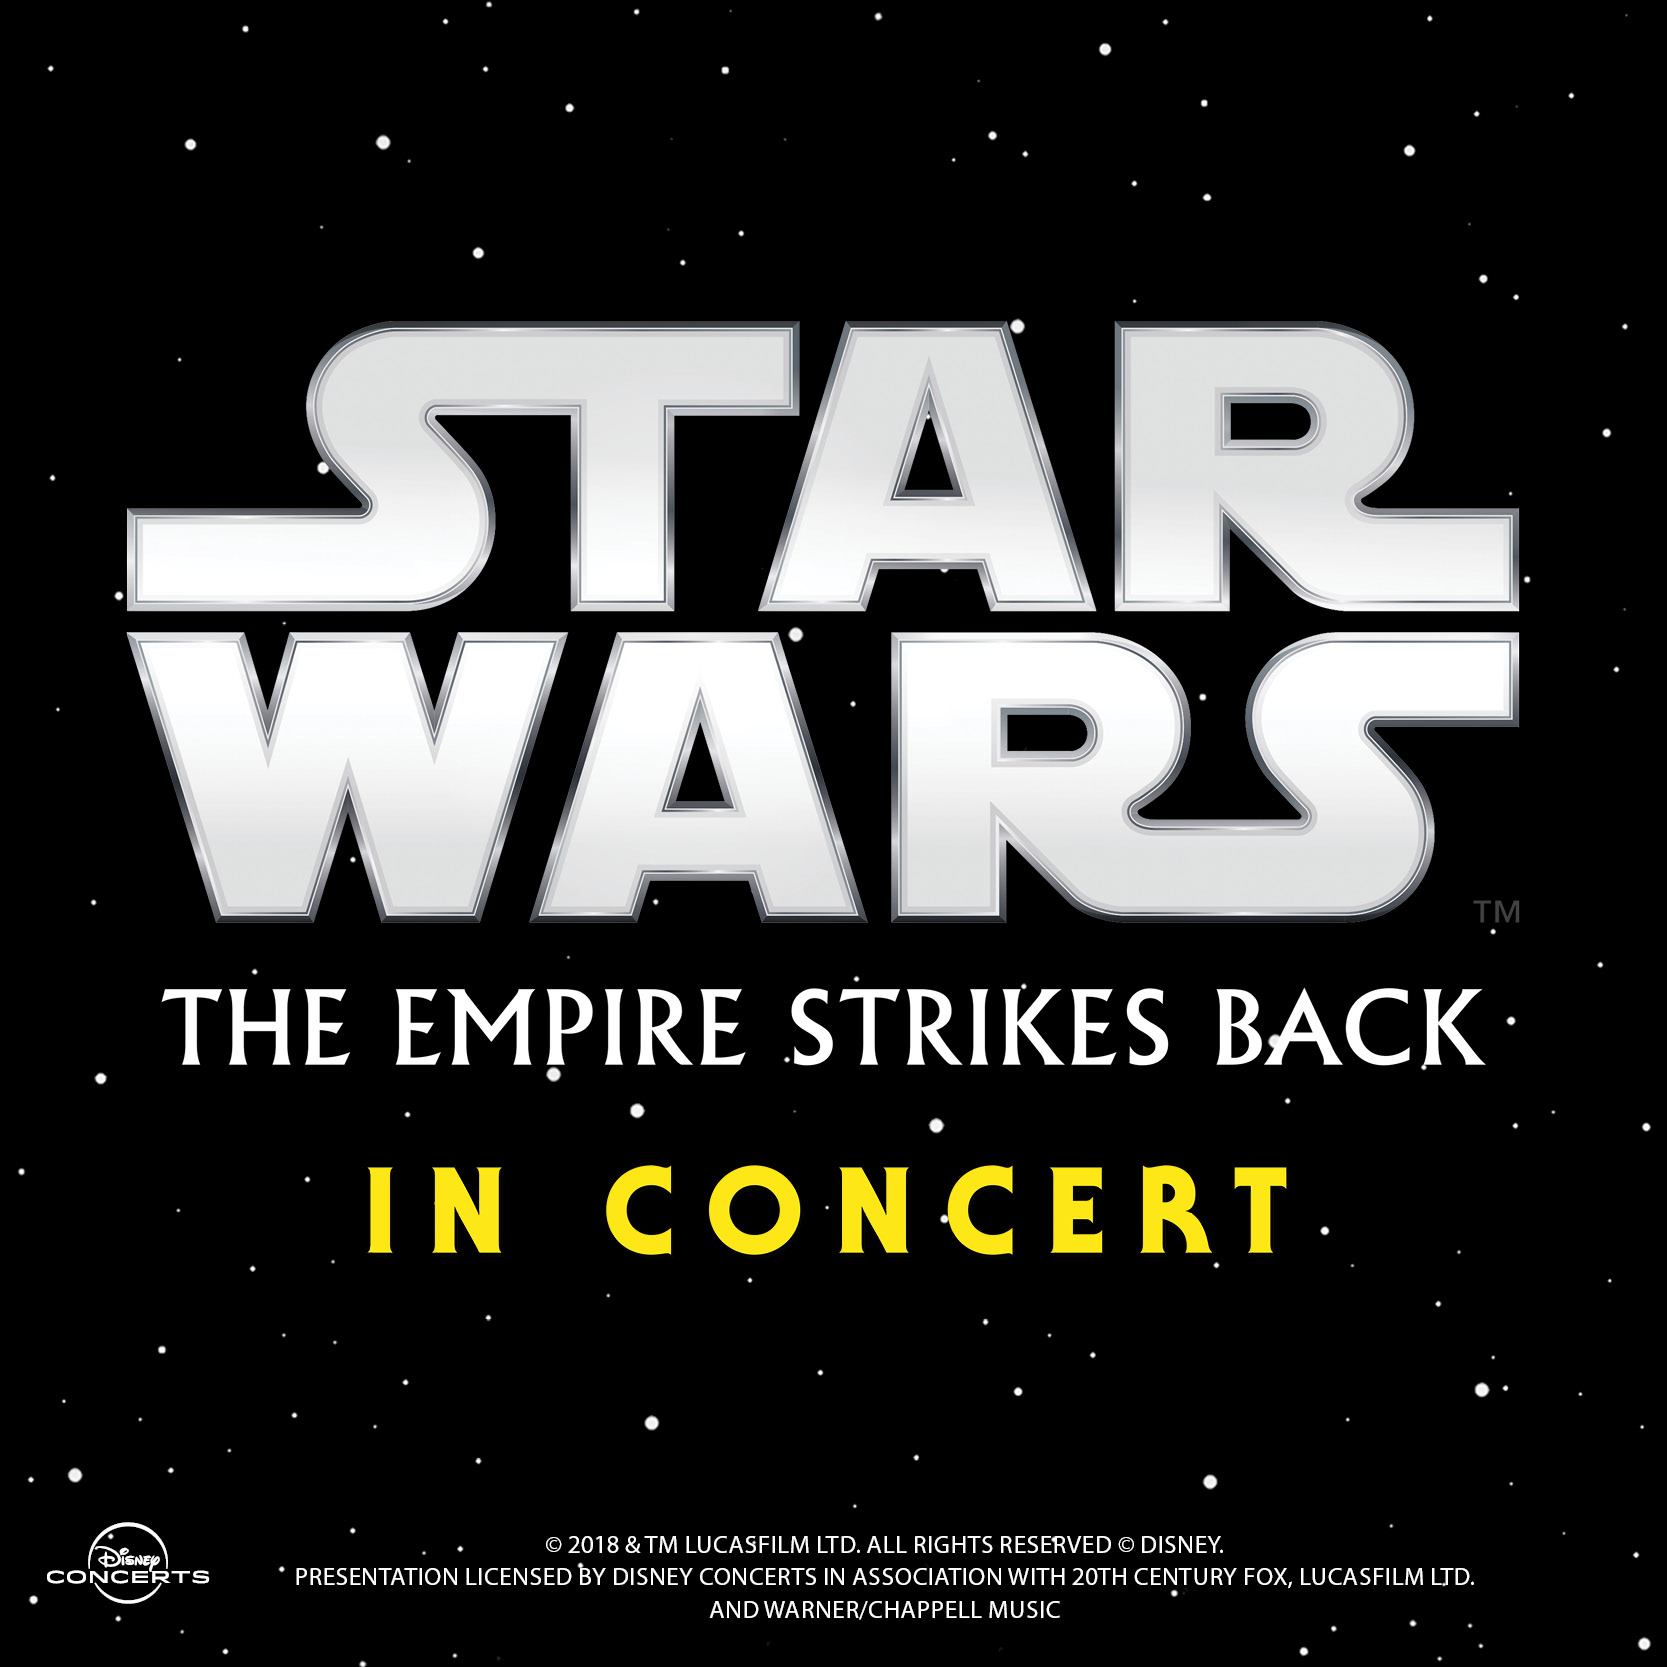 STAR WARS: FILM CONCERT SERIES